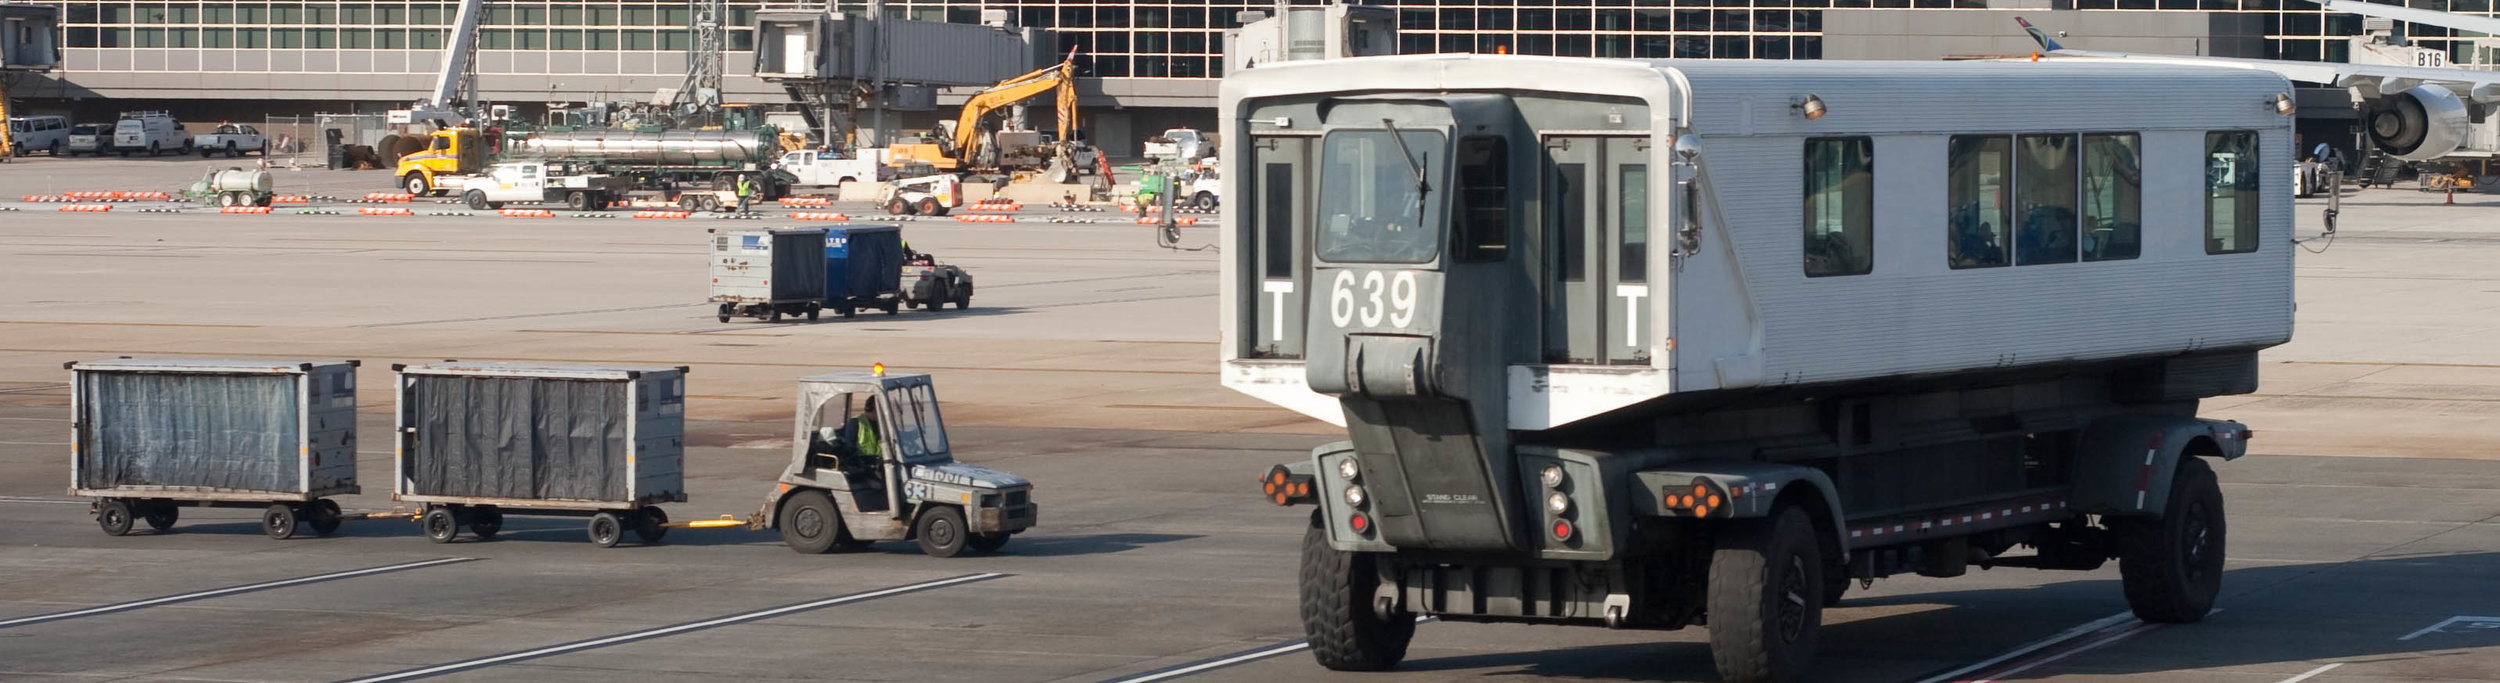 Dulles mobile lounge. ( Photo by flickr user paul_houle  via Creative Commons, CC BY-SA 2.0)